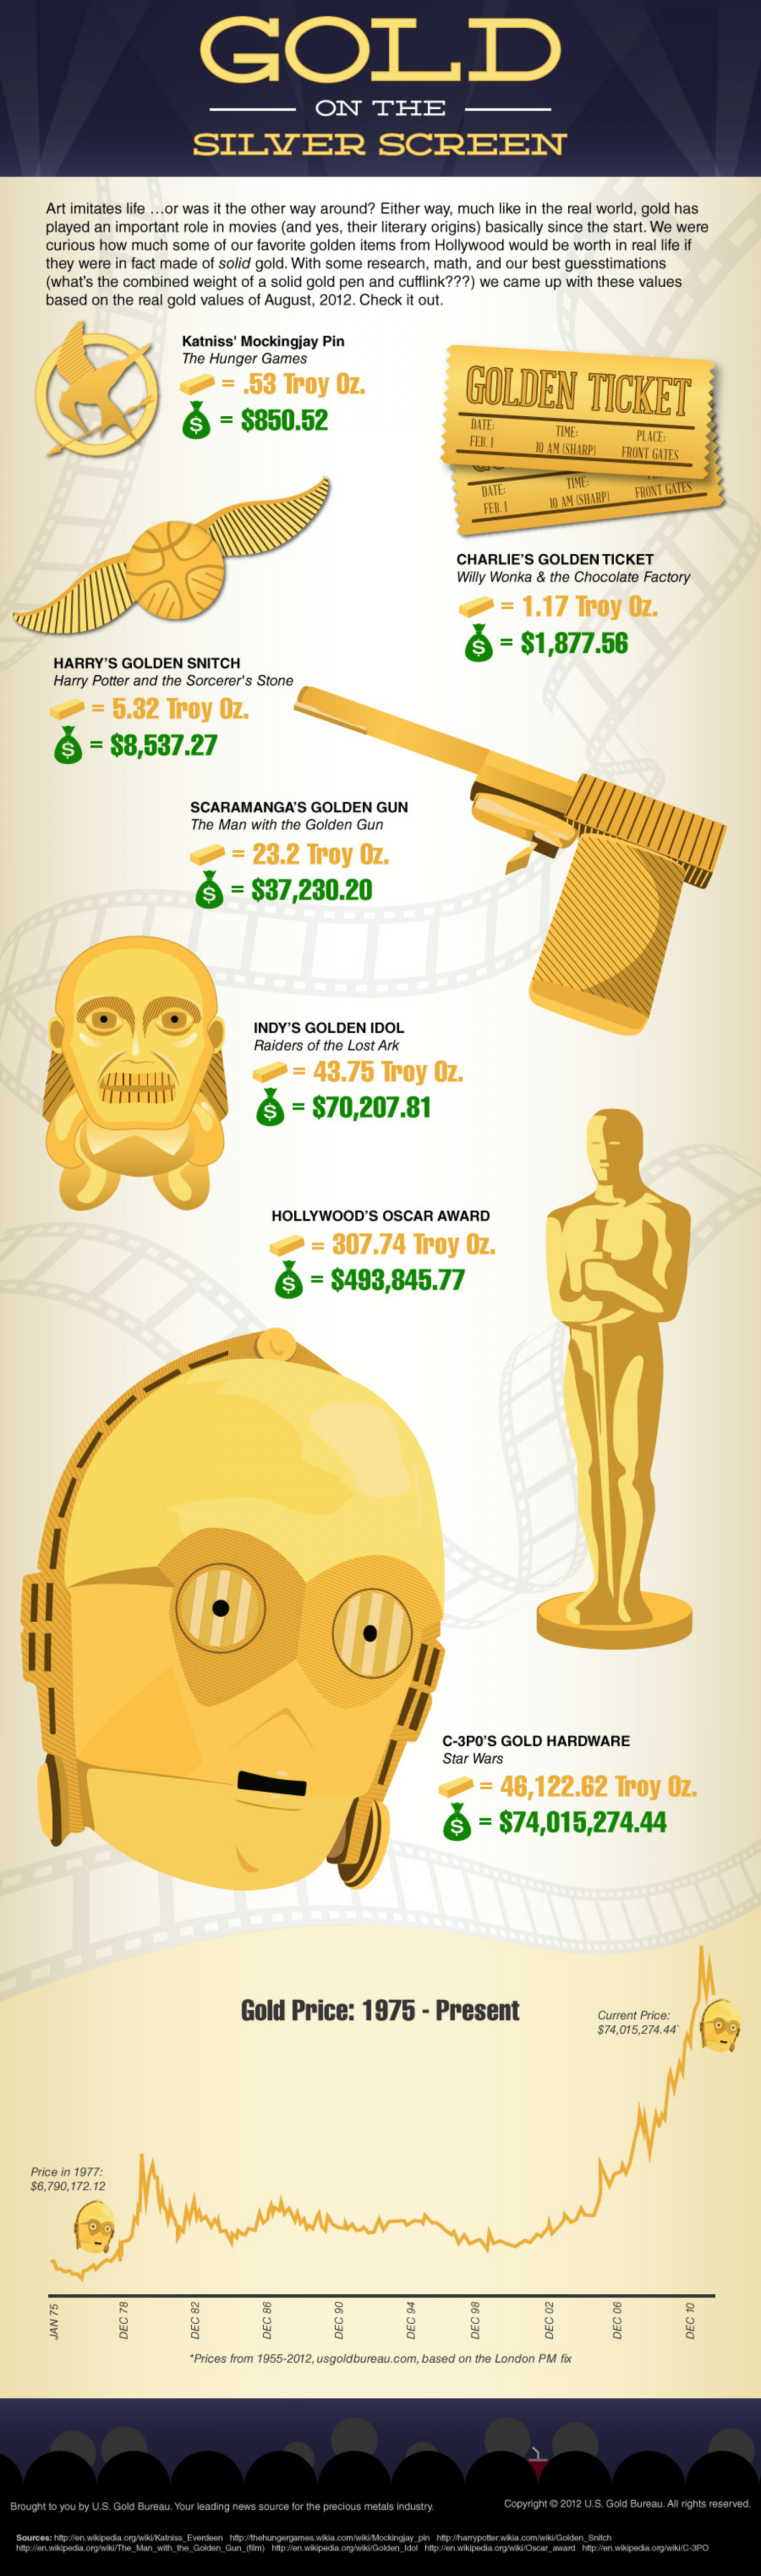 Gold on the Silver Screen Infographic